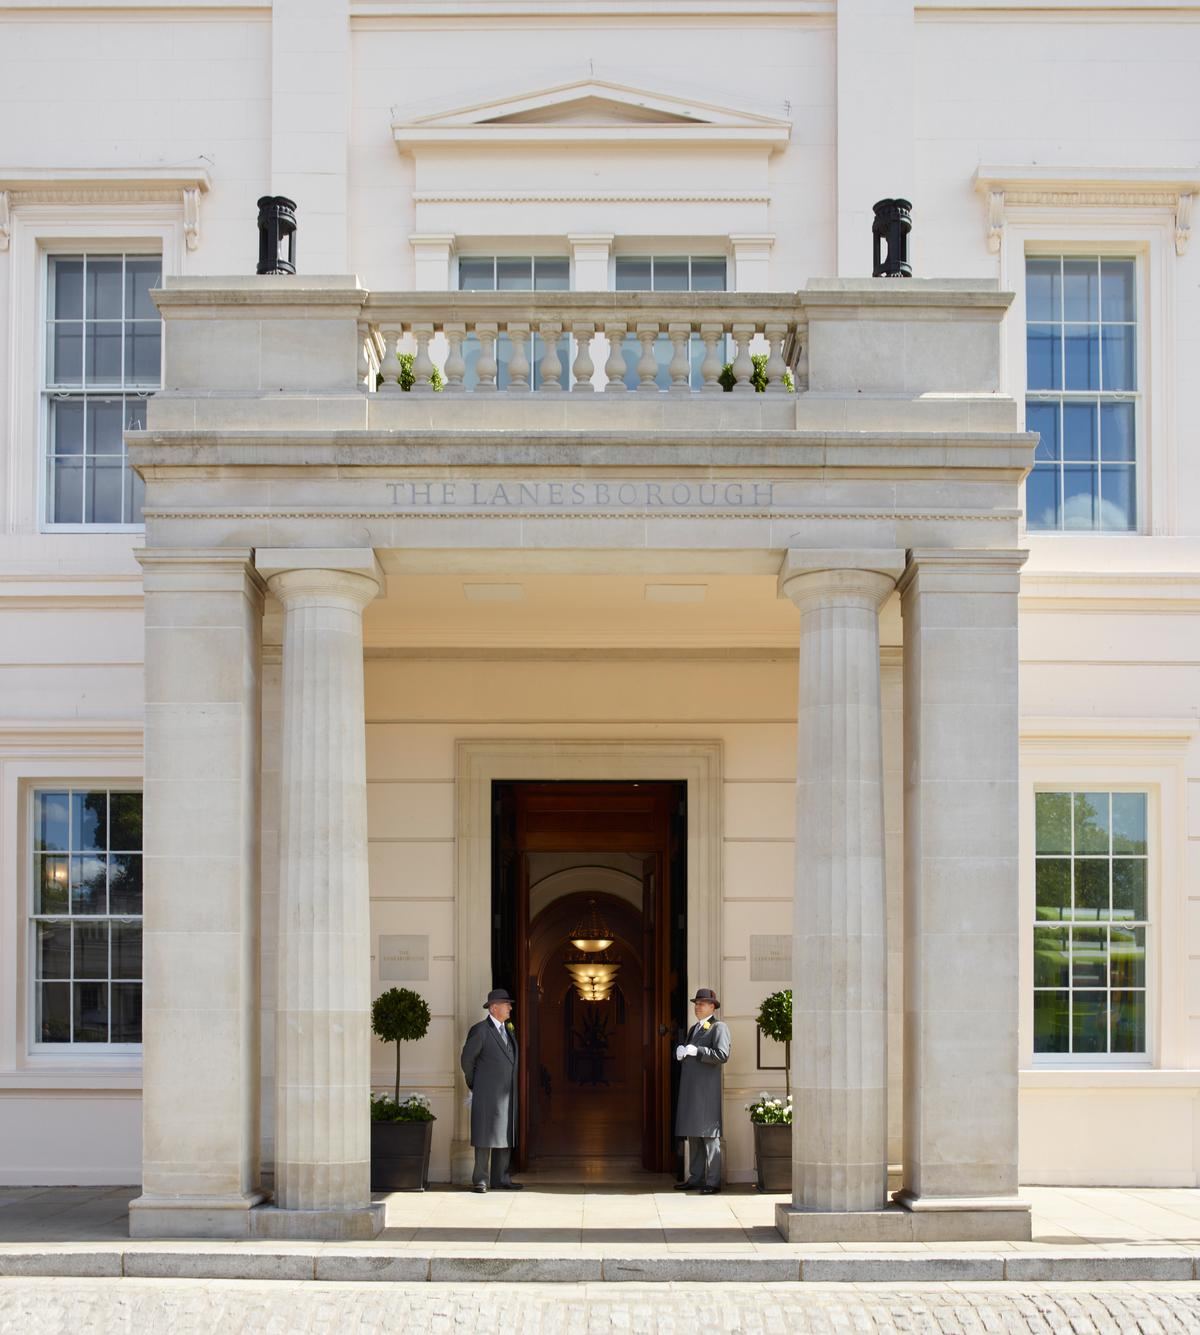 The language of the spa is taken from the hotel, including Portland stone, rich timbers and paneling